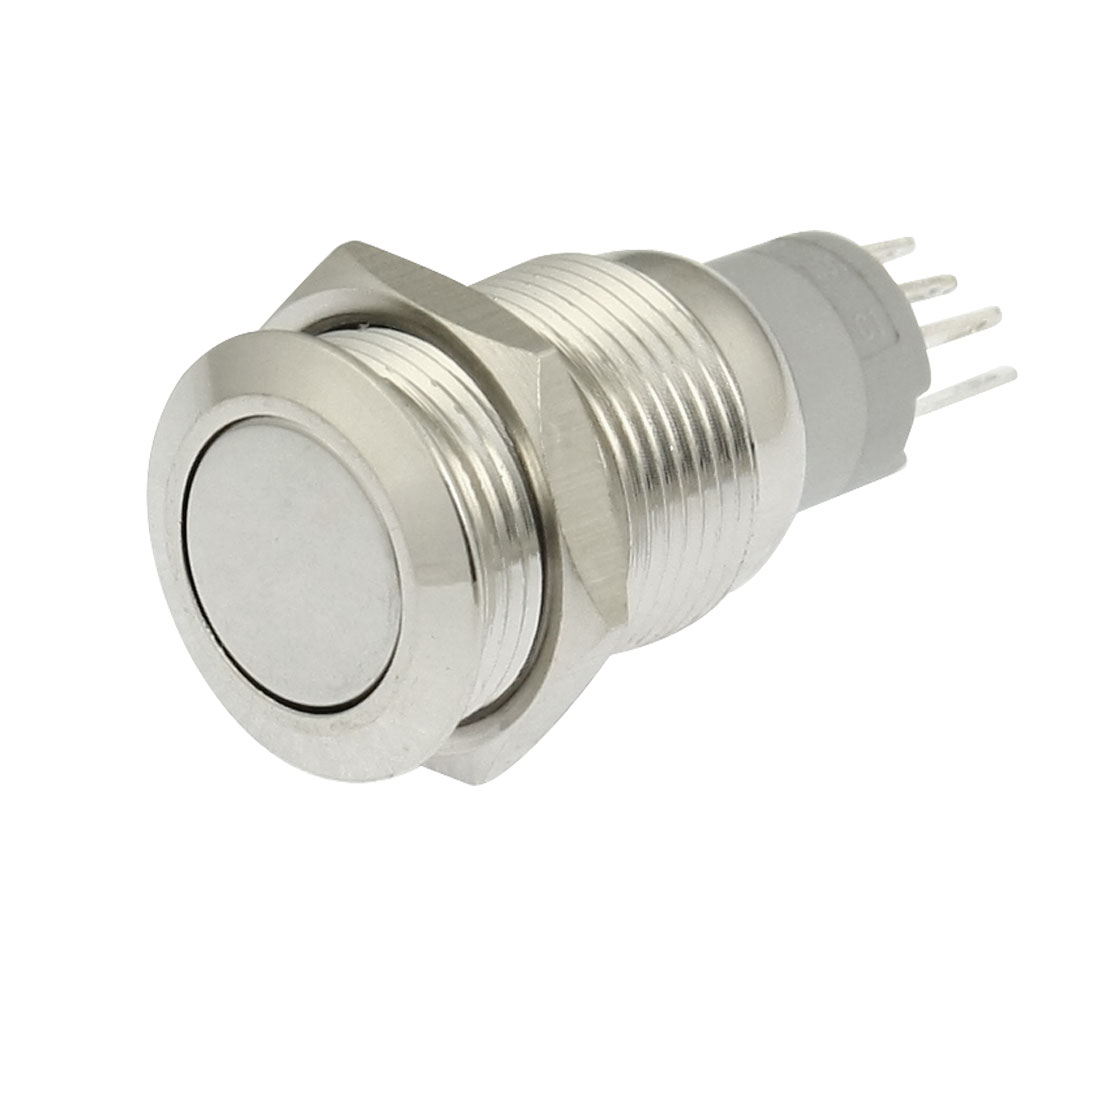 AC 250V 3A 16mm Stainless Flat Latching Push Button Switch